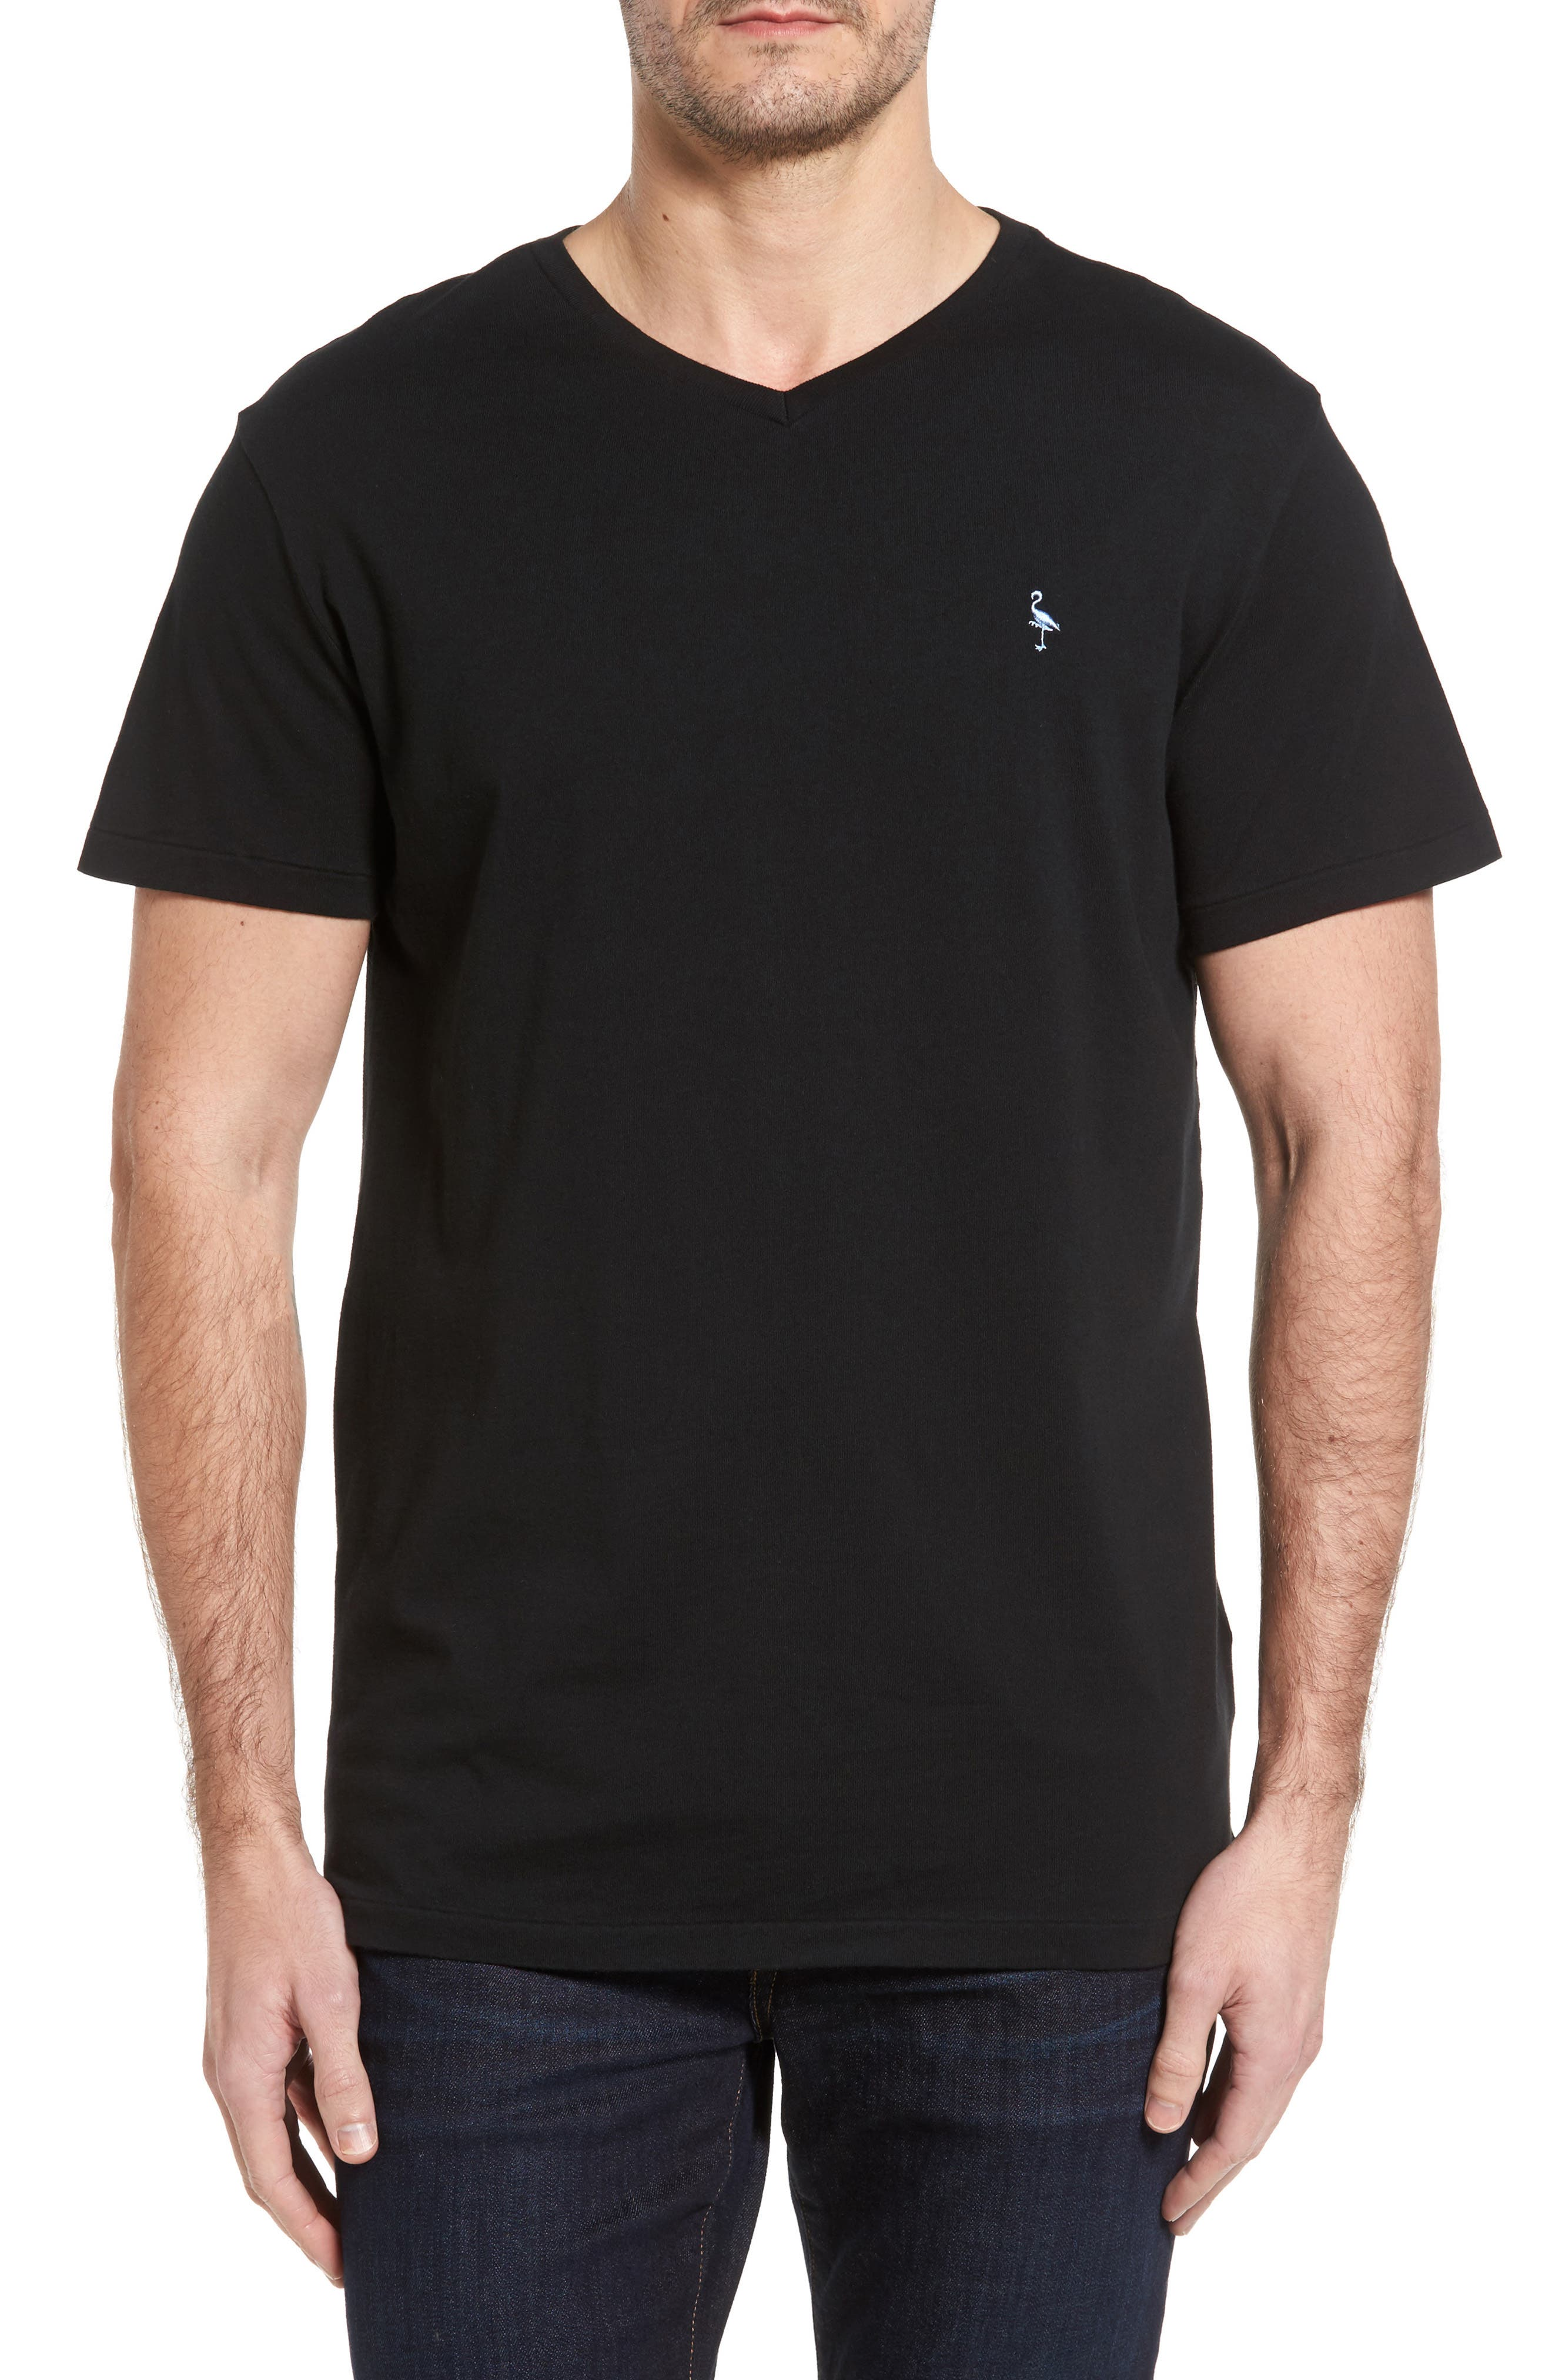 TailorByrd V-Neck T-Shirt (Big)